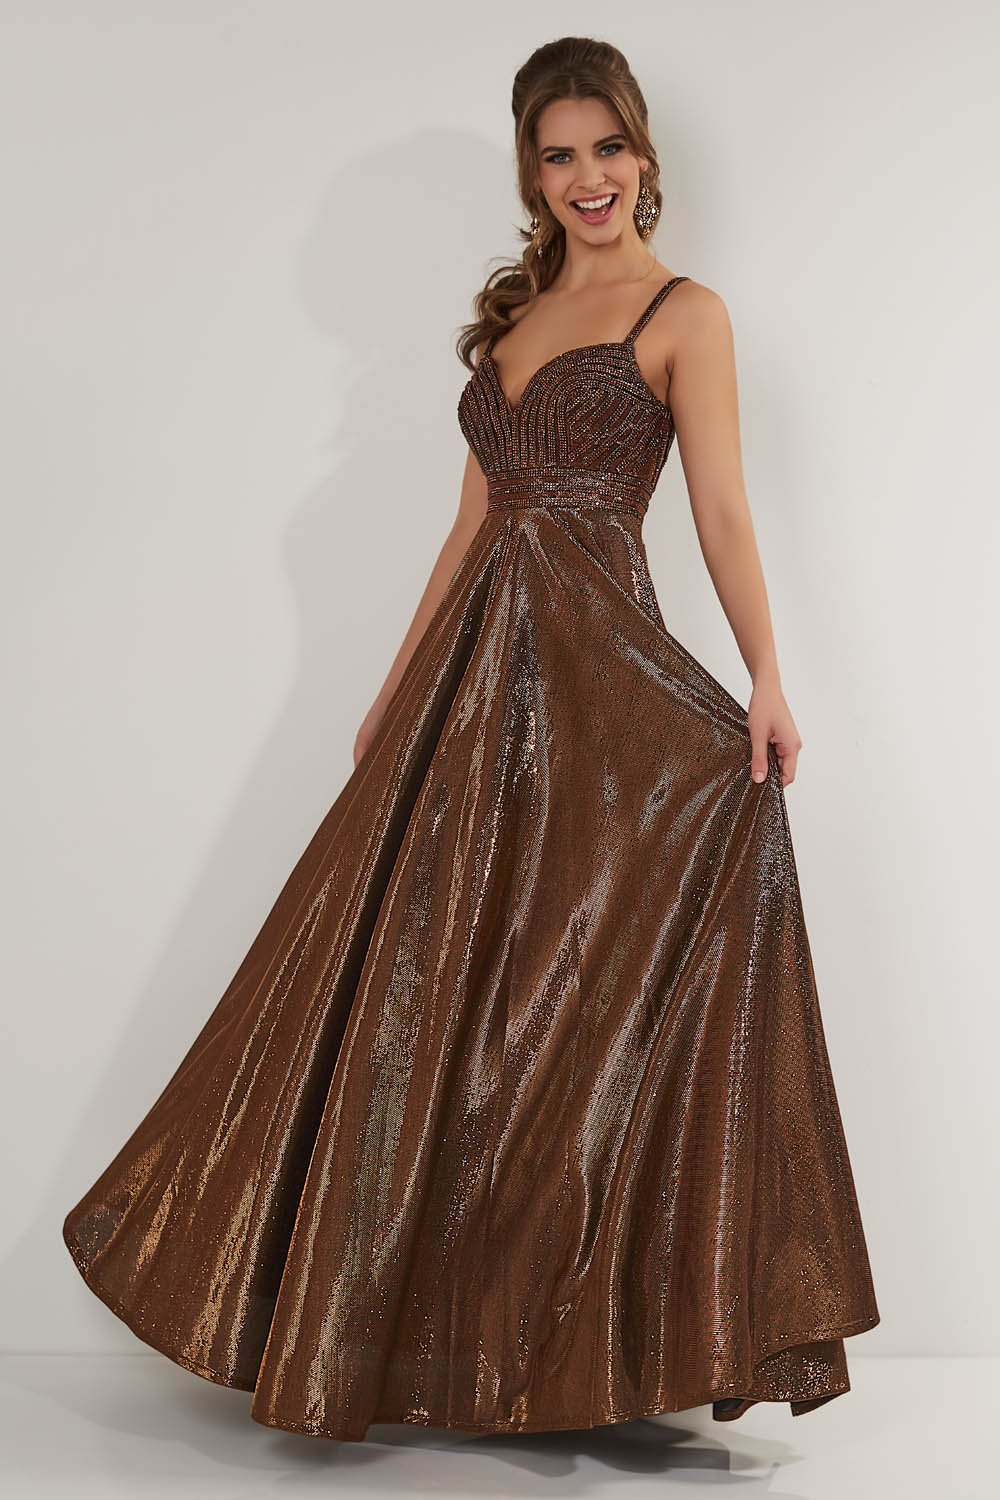 Studio 17 12717 prom dress images.  Studio 17 12717 is available in these colors: Bronze, Teal.